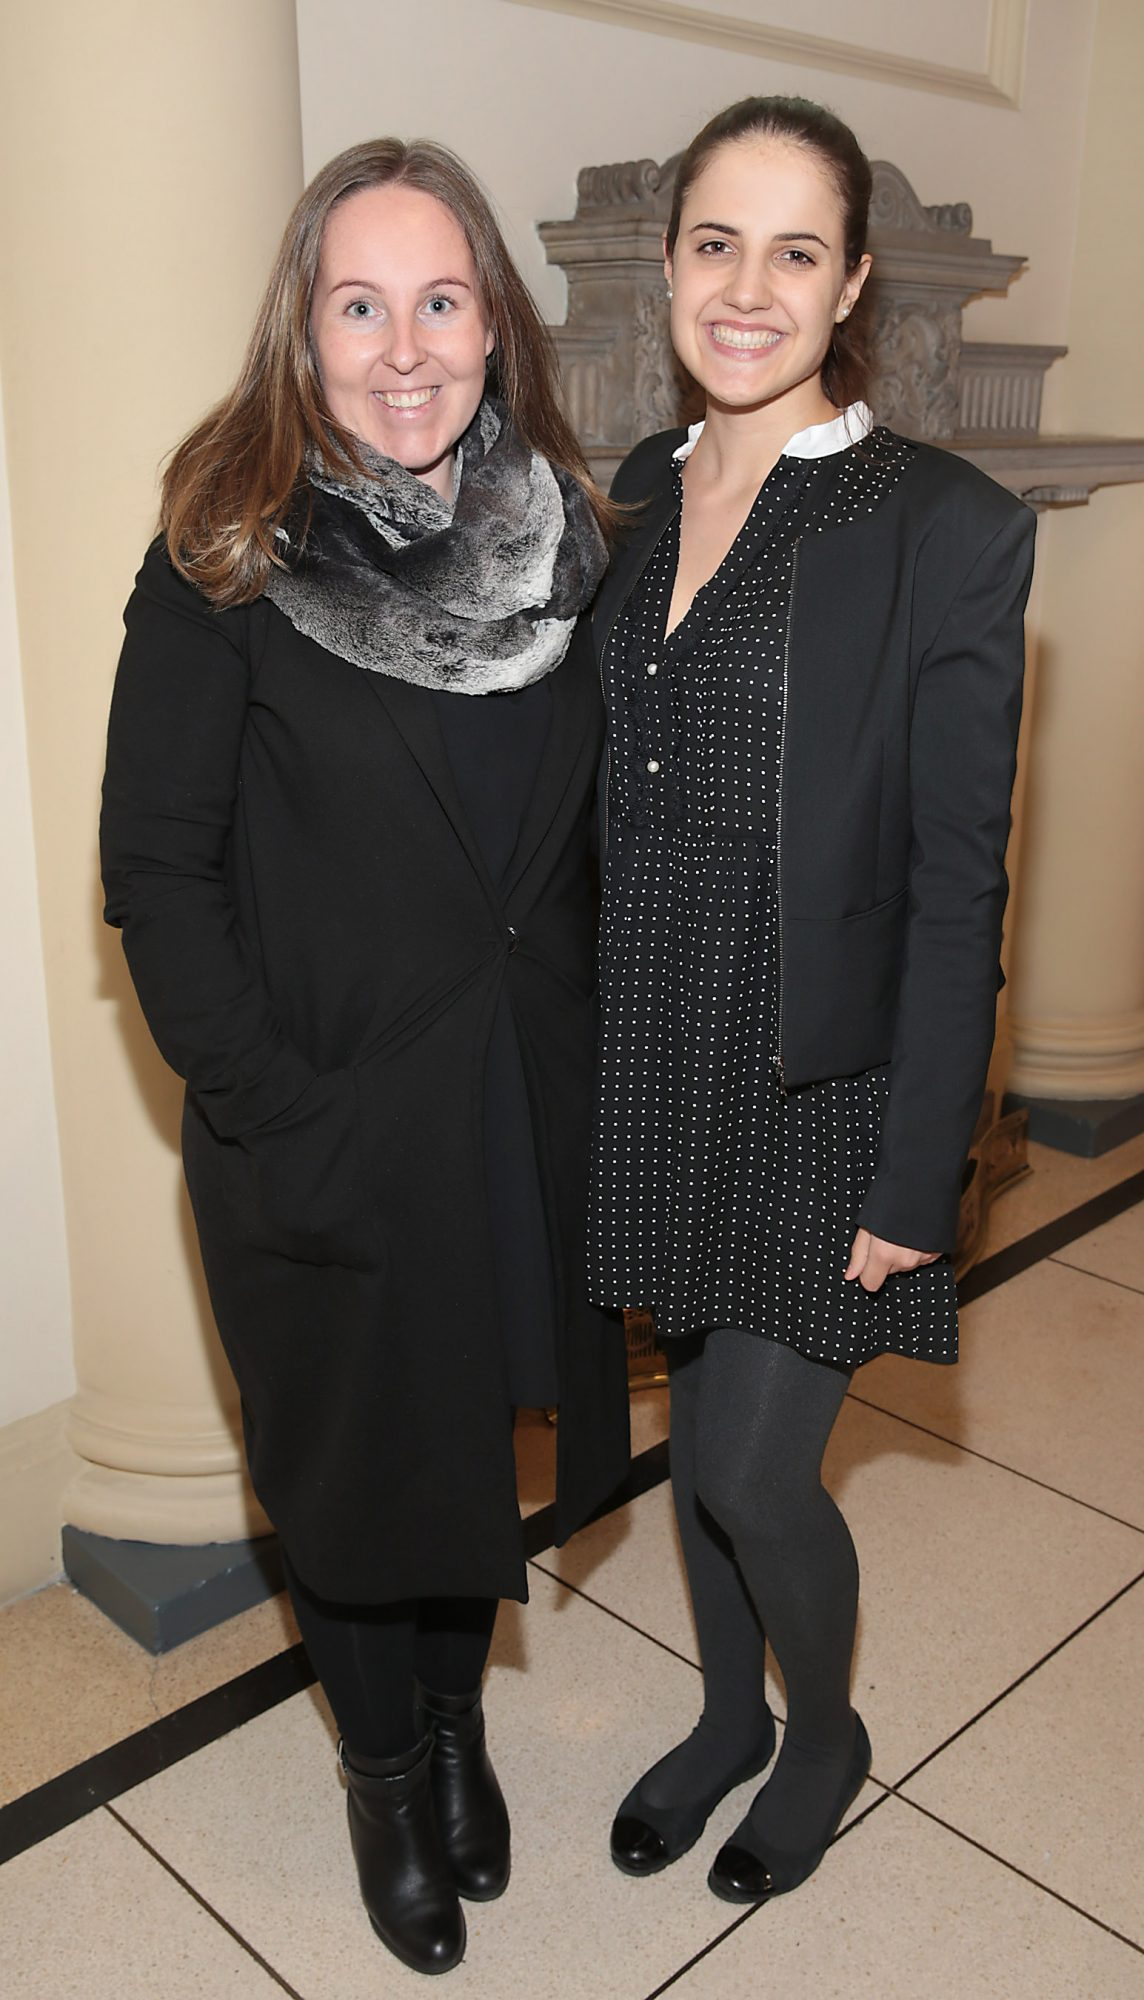 Jenny Armstrong and Michaela Hogan pictured at the official opening event of Dublin Chinese New Year Festival 2019 at The Hugh Lane Gallery sponsored by Kildare Village. Dublin Chinese New Year Festival runs until 17th February for more see www.dublinchinesenewyear.com   Pic Brian McEvoy